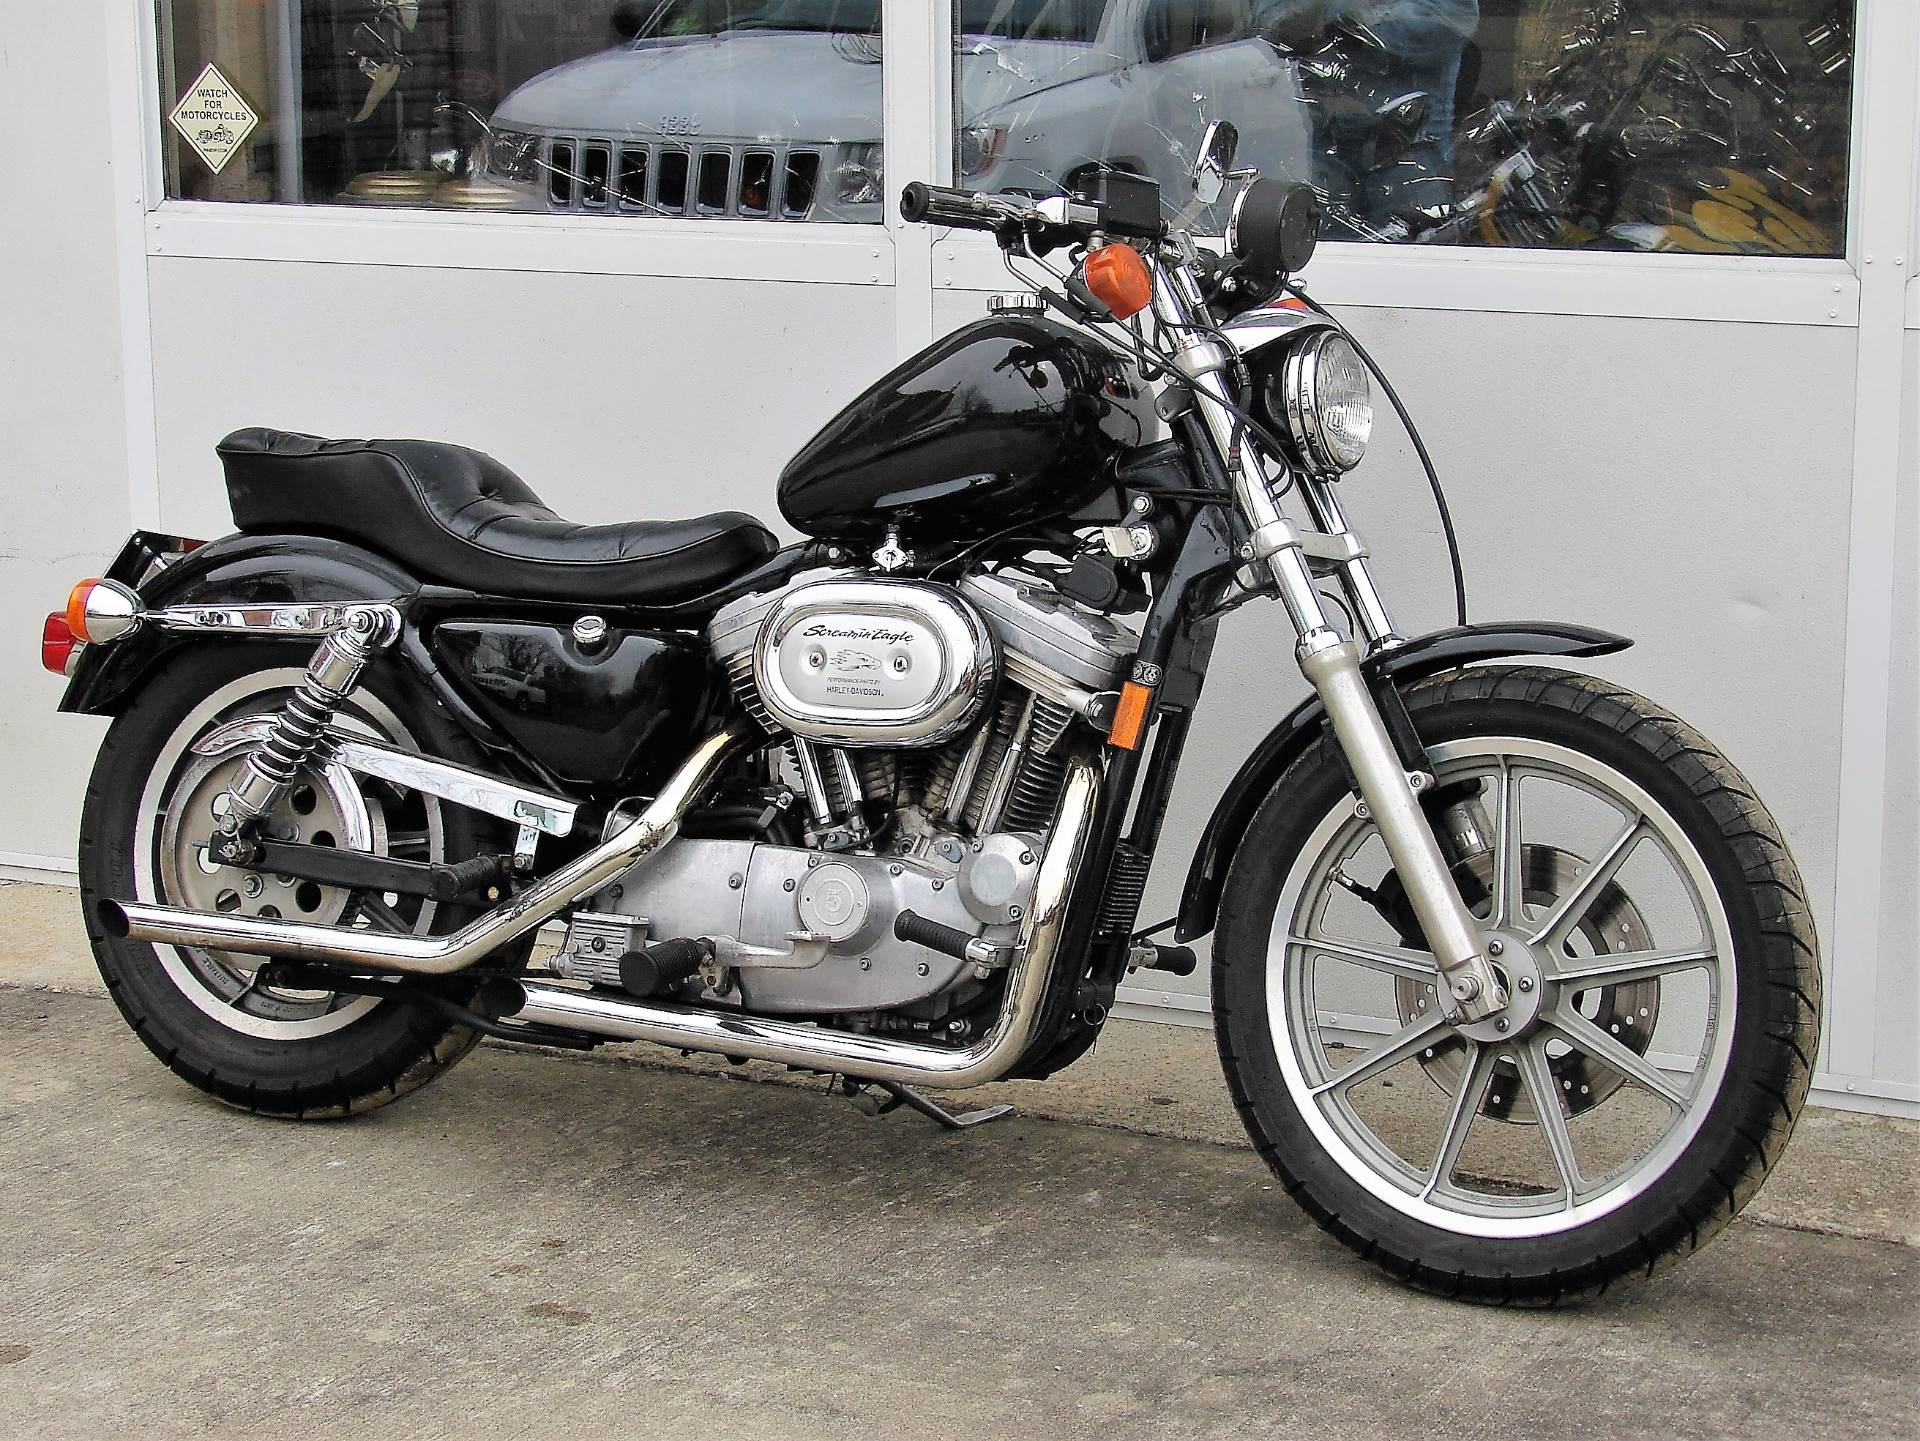 1995 Harley-Davidson Sportster 883 in Williamstown, New Jersey - Photo 4